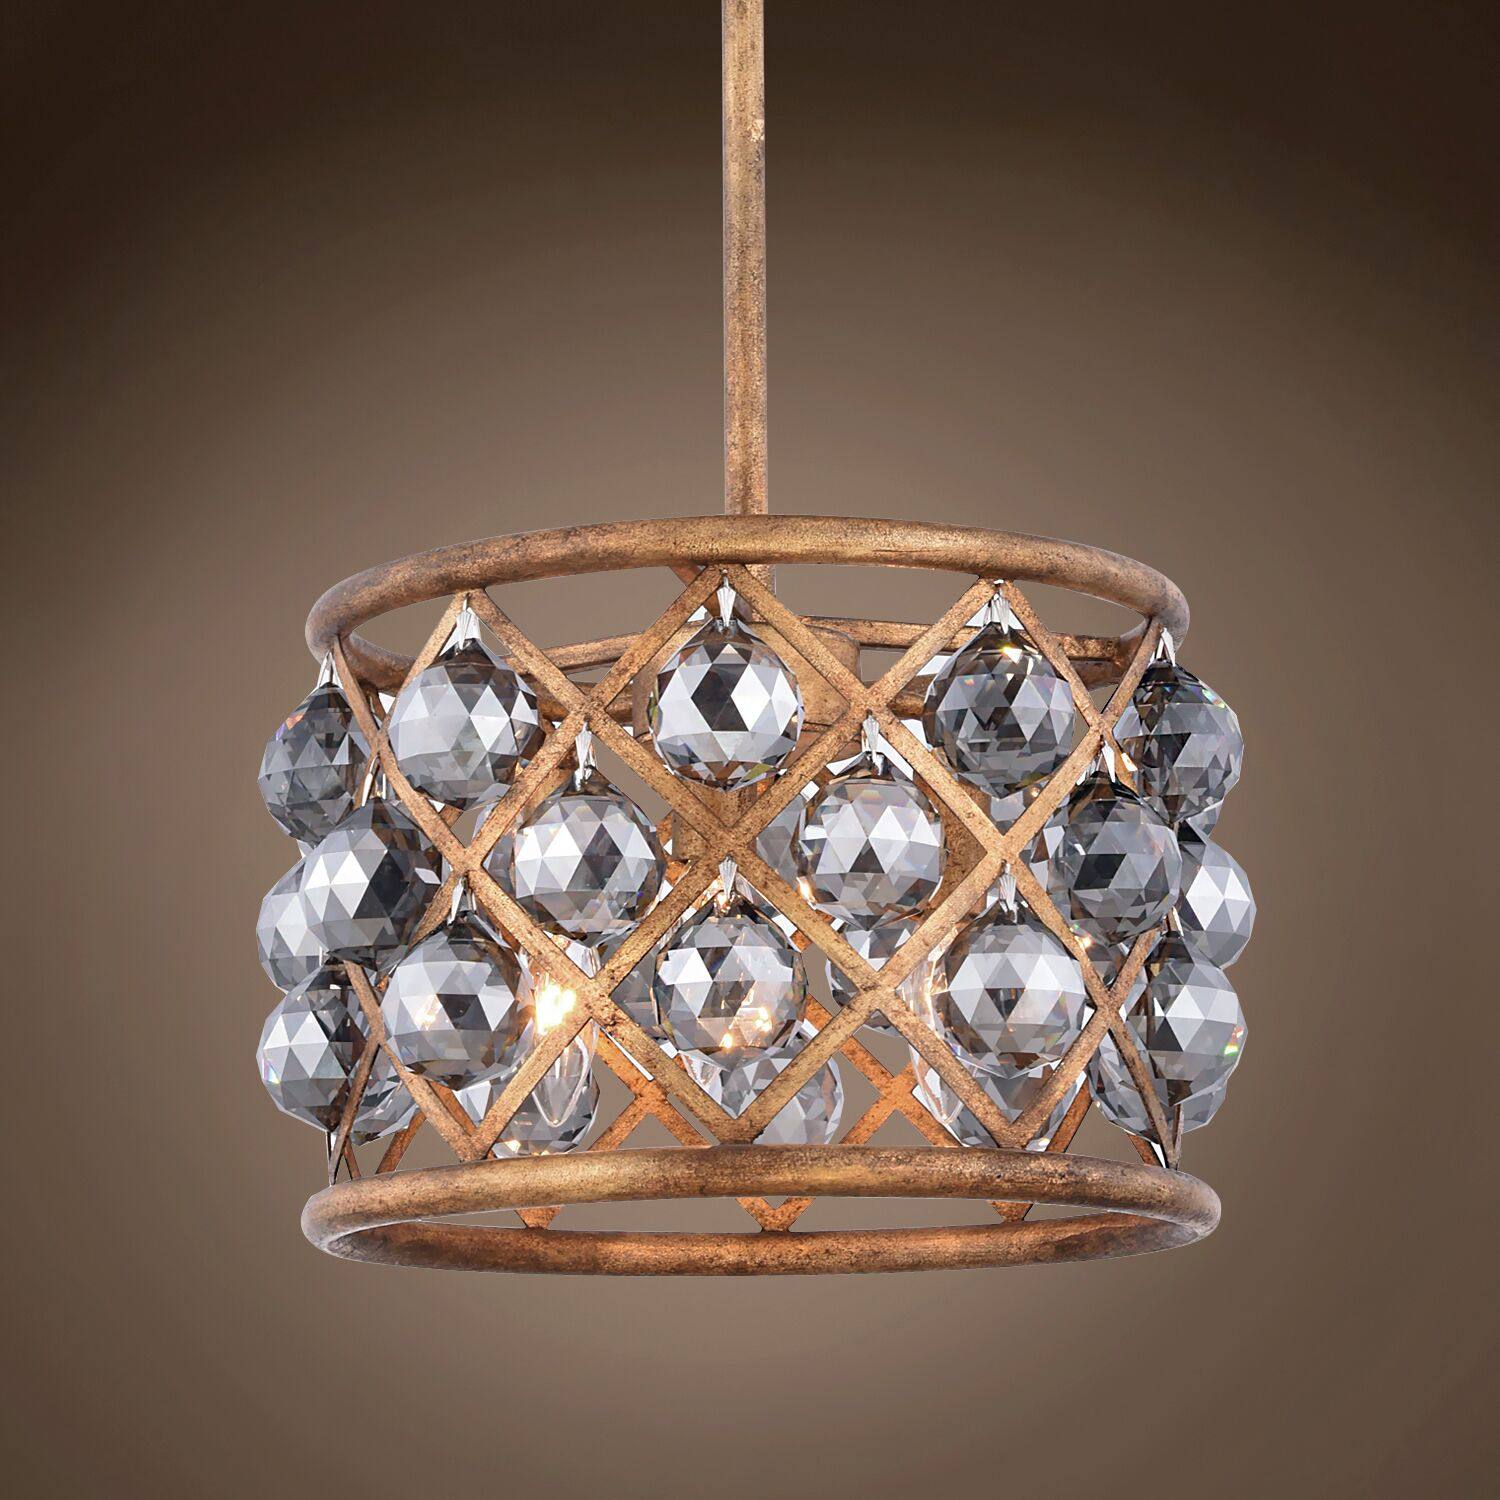 Lulsgate 3-Light Chandelier Finish: Gold, Bulb Type: Incandescent, Shade Color: Smoke